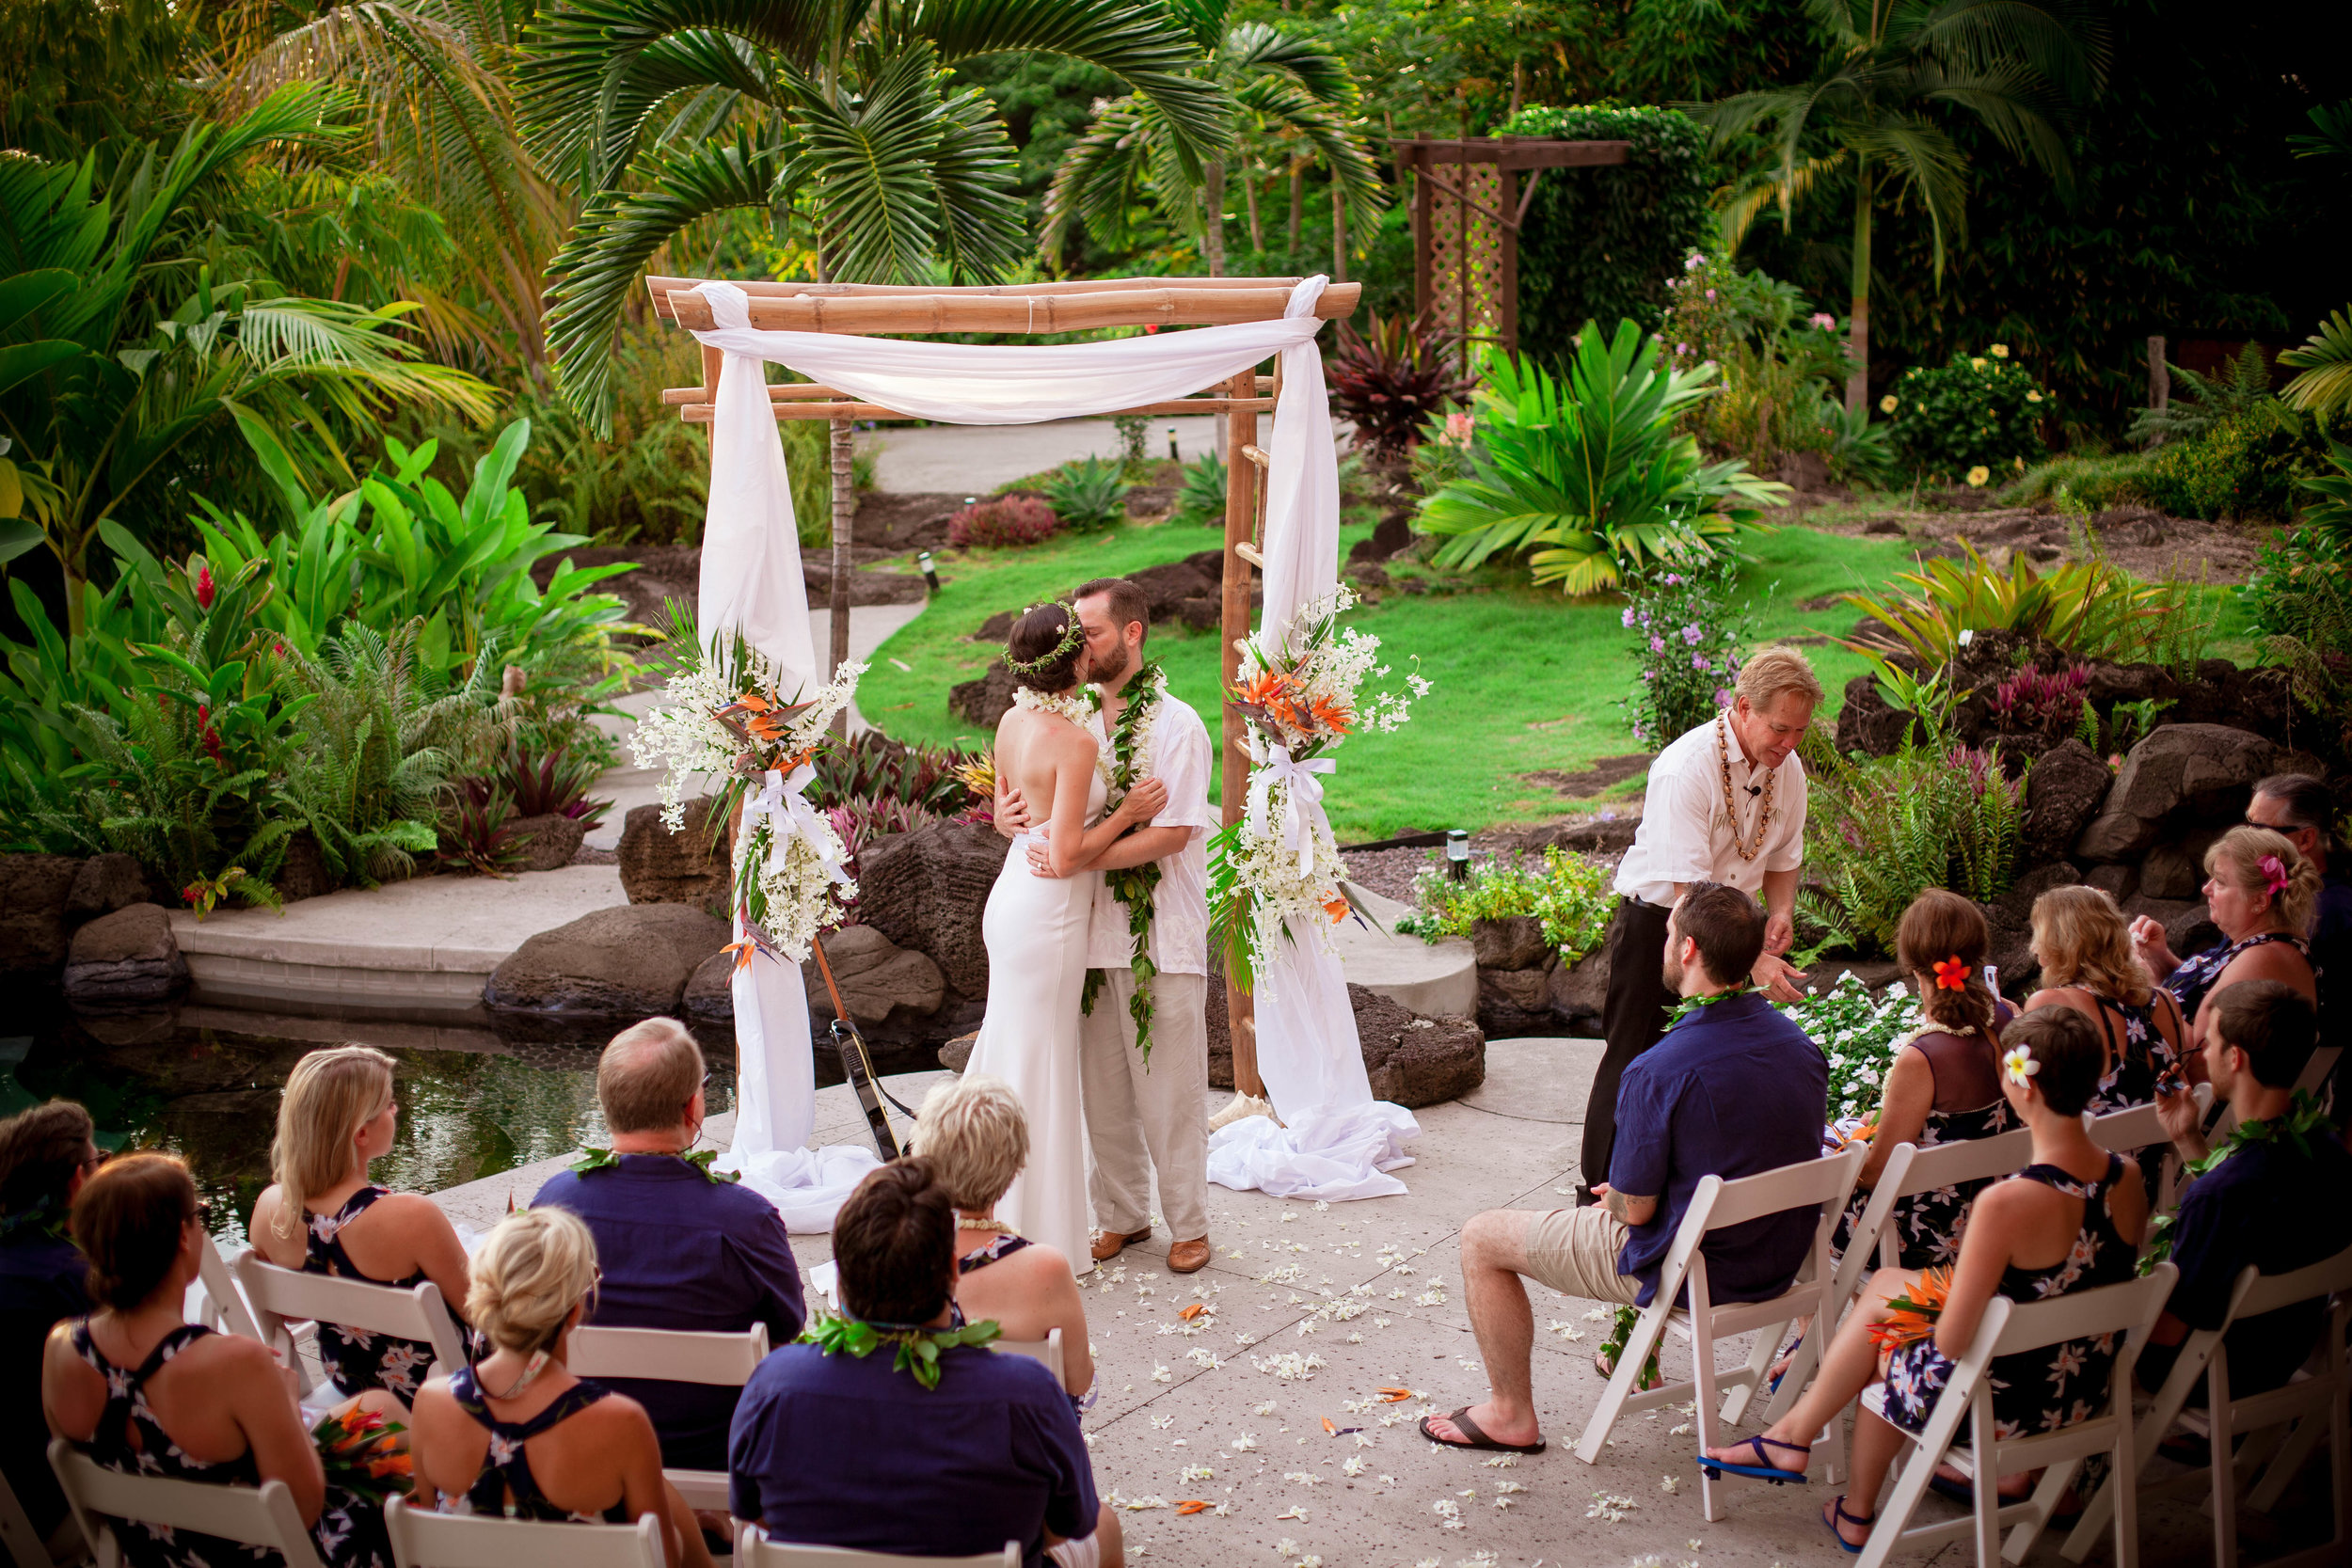 big island hawaii holualoa estate wedding 20160908180830-1kb.jpg